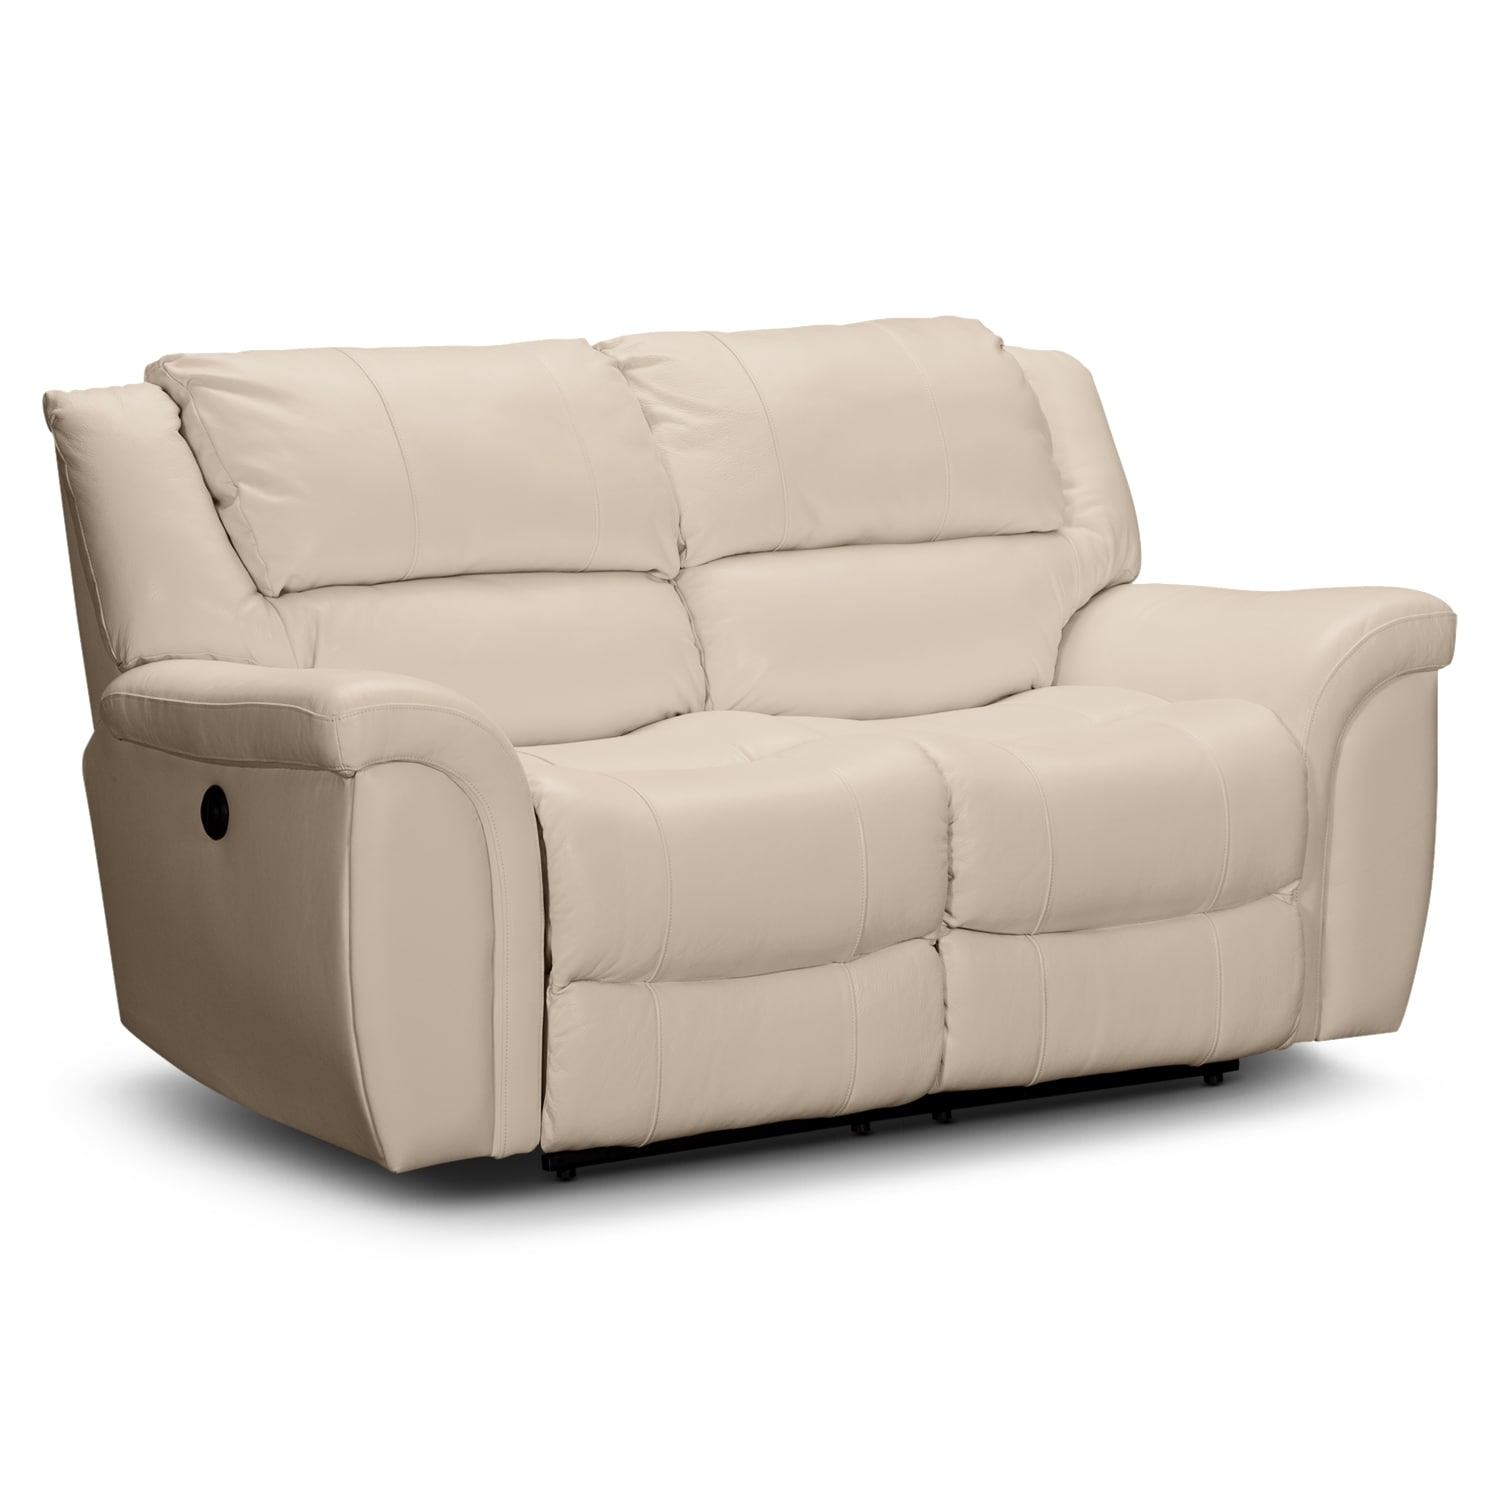 Power reclining sofas and loveseats pictures to pin on pinterest pinsdaddy Power loveseat recliner